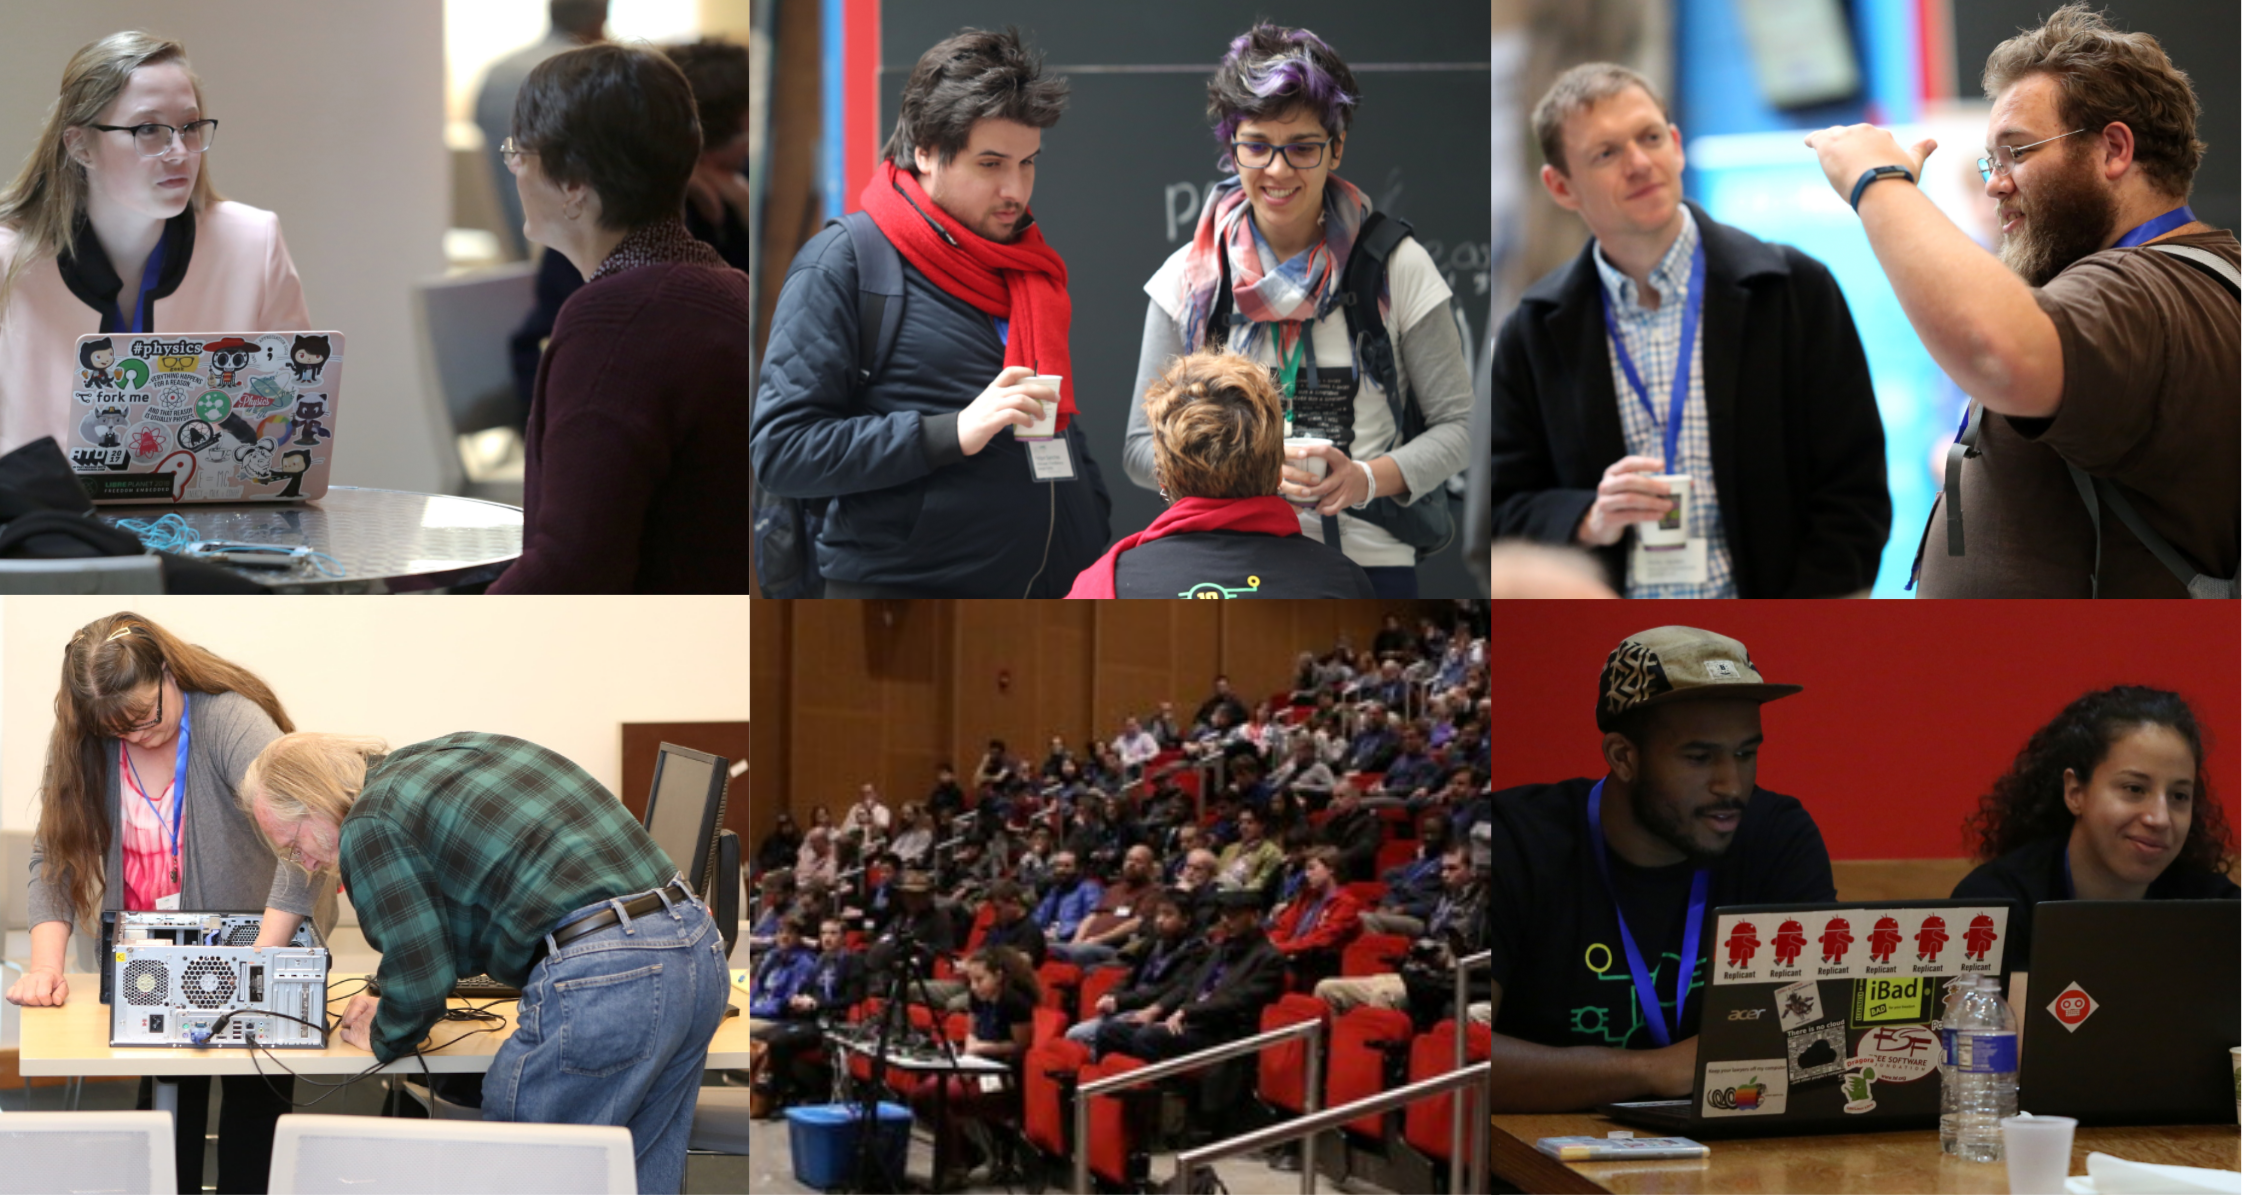 collage of pics from LibrePlanet 2018 -- by Kori Feener CreativeCommons-Attribution-Sharealike 4.0